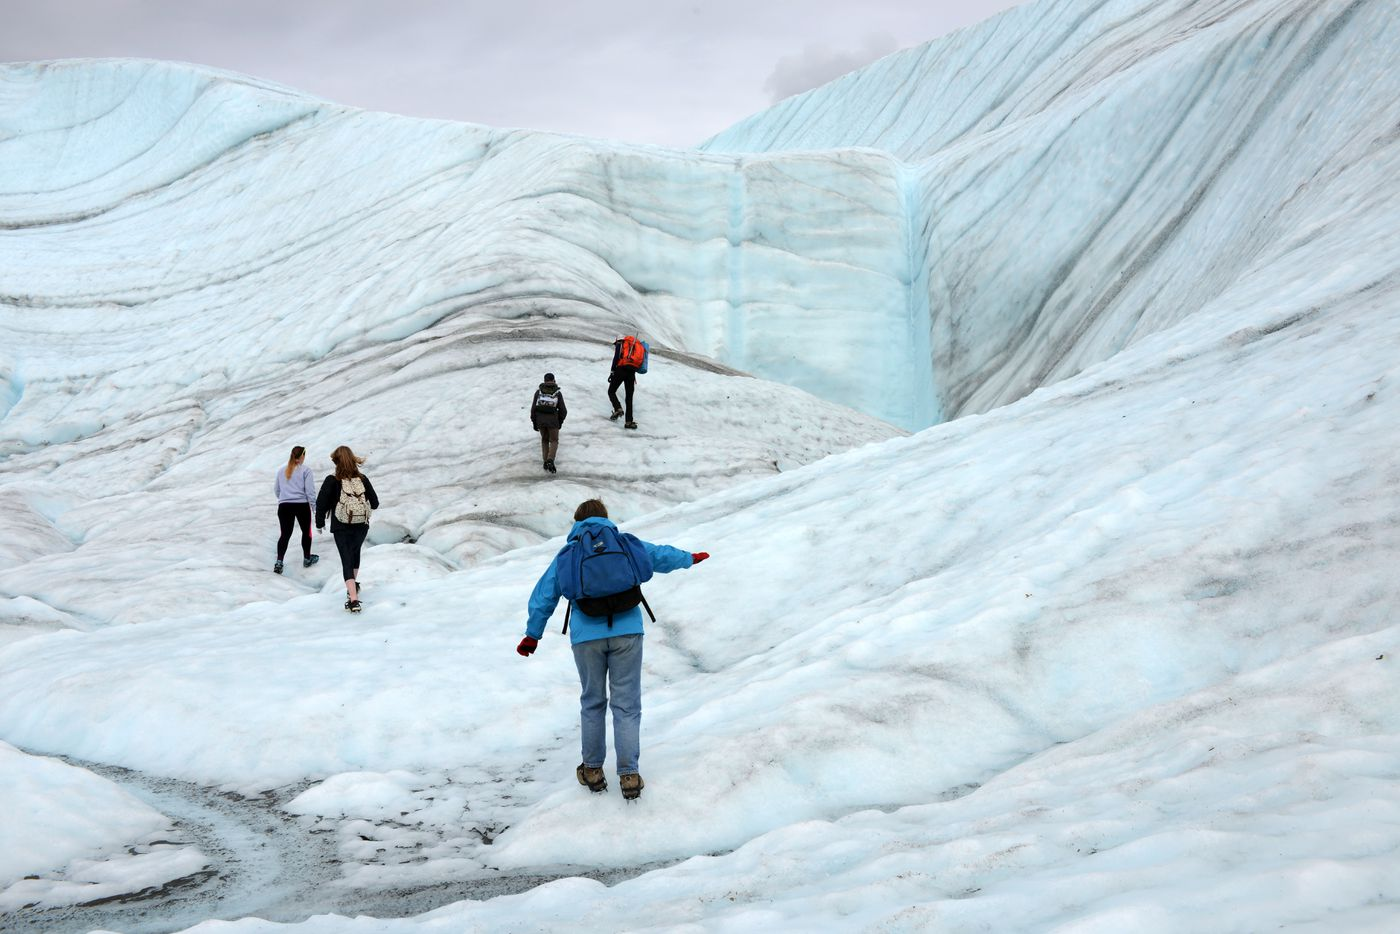 Guided visitors explore Root Glacier in June of 2015 near Kennecott. The glacier joins the Kennicott Glacier near the Kennecott Mine site in Wrangell St. Elias National Park and Preserve. (Erik Hill / Alaska Dispatch News)